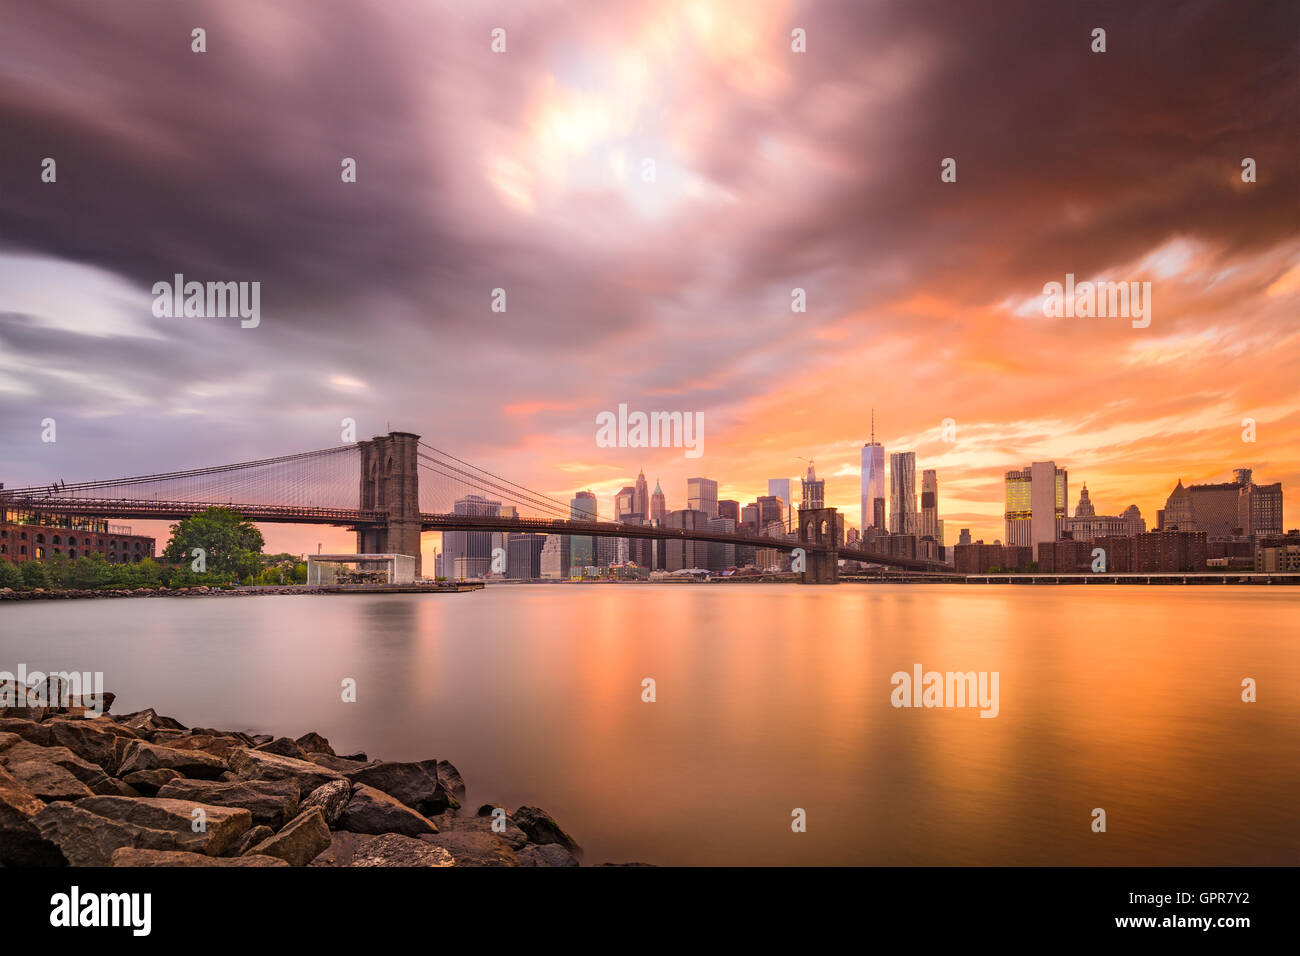 New York City skyline at dusk. - Stock Image